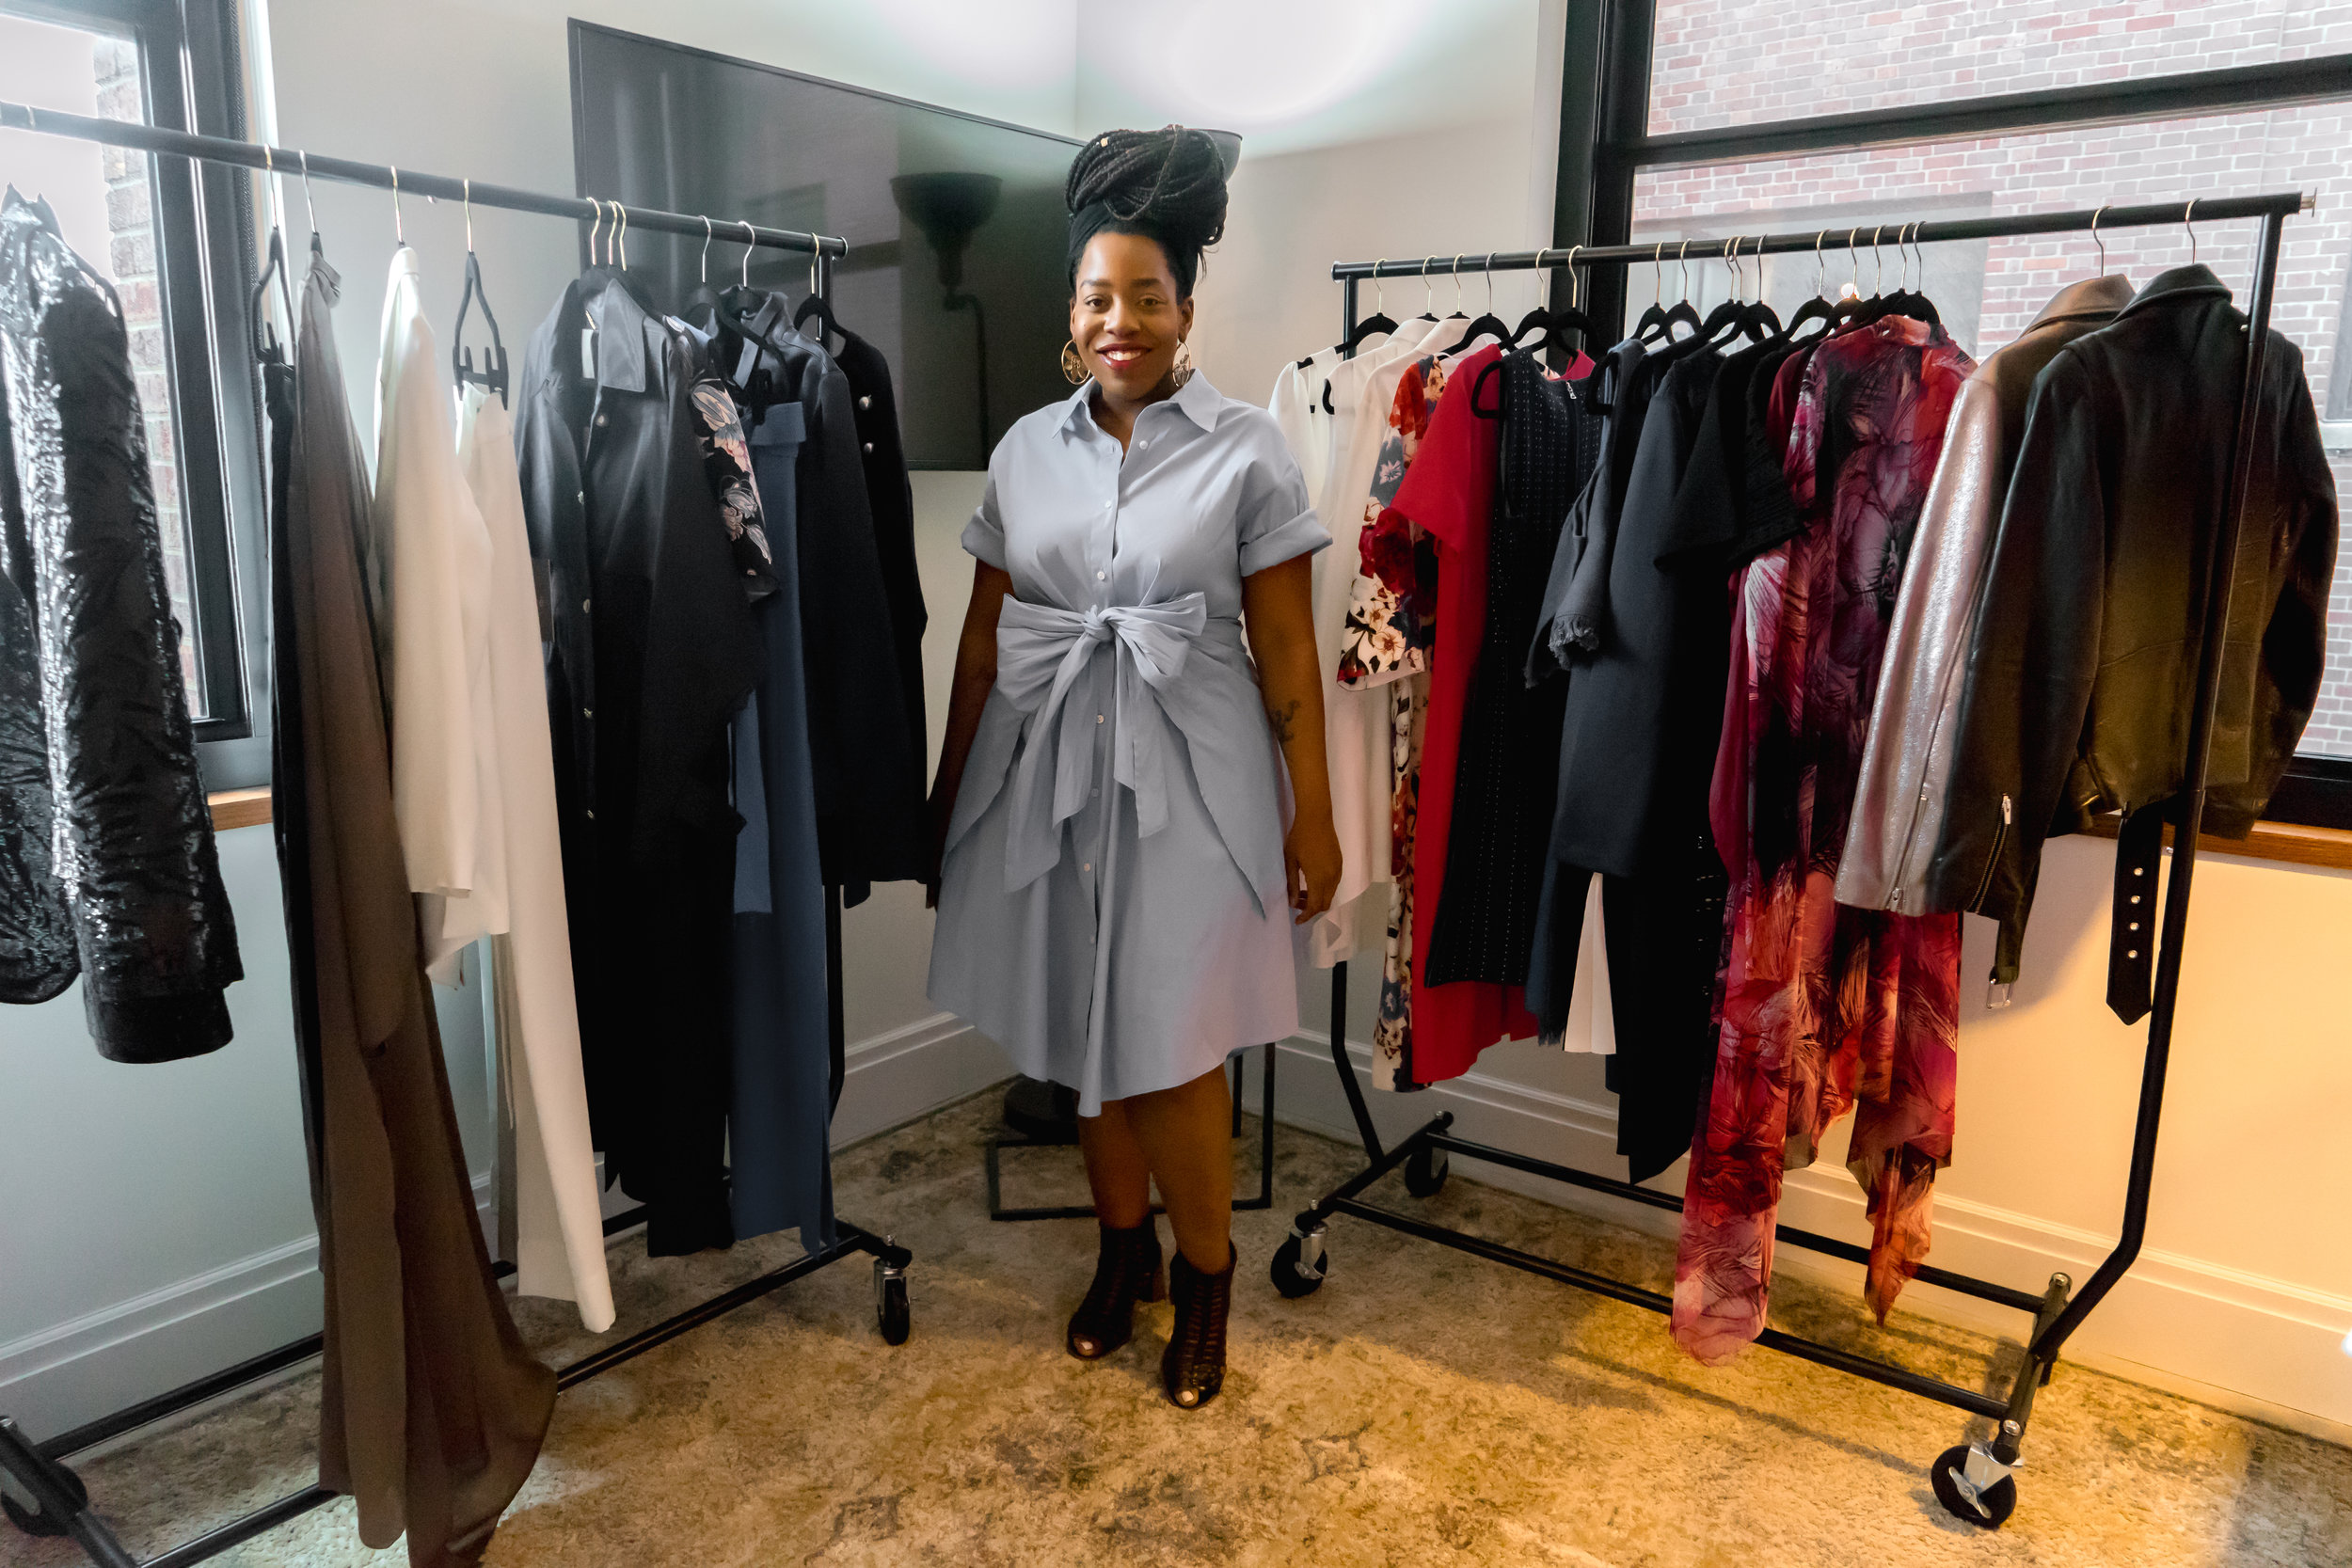 Pop up offers designer fashion for women of all sizes - A partnership between celebrity stylist Christos Garkinos, J'adore Detroit and 11 Honoré brought size-inclusive designer apparel to the Detroit Foundation Hotel.Head to SEEN the Magazine for Lately with Lo's review of the transformational event.